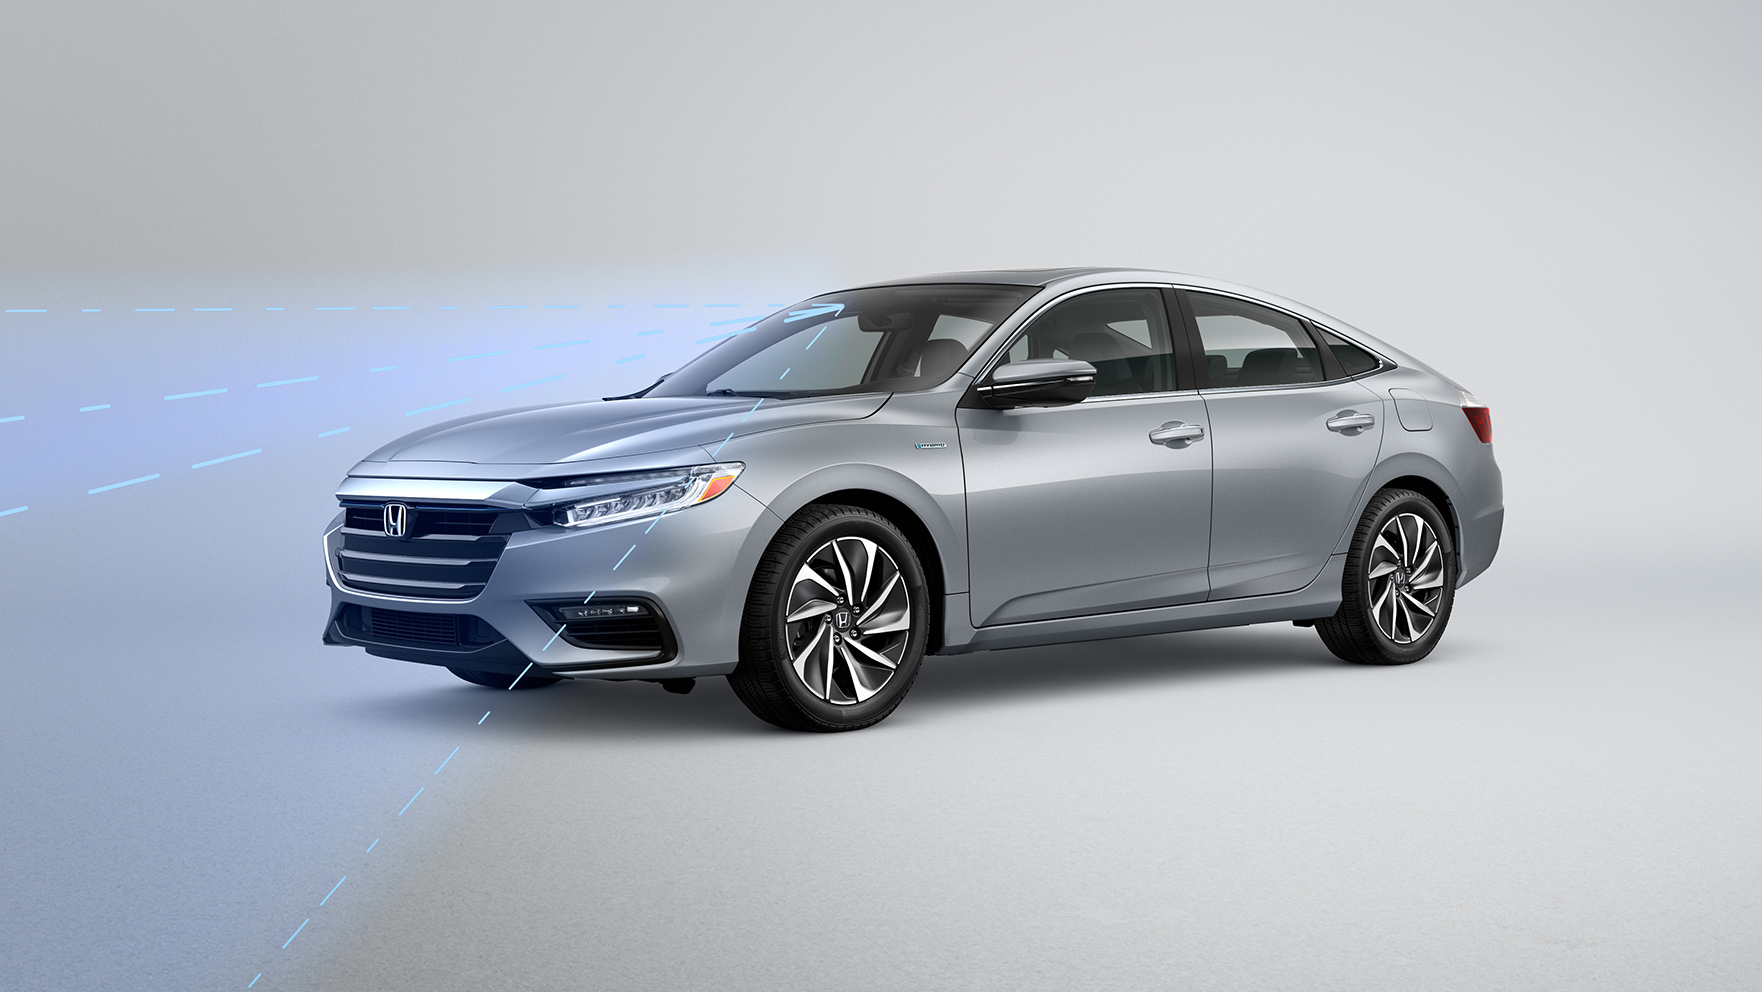 Front driver-side view of the Honda Insight Touring in Lunar Silver Metallic, with illustrated graphics demonstrating Road Departure Mitigation feature.